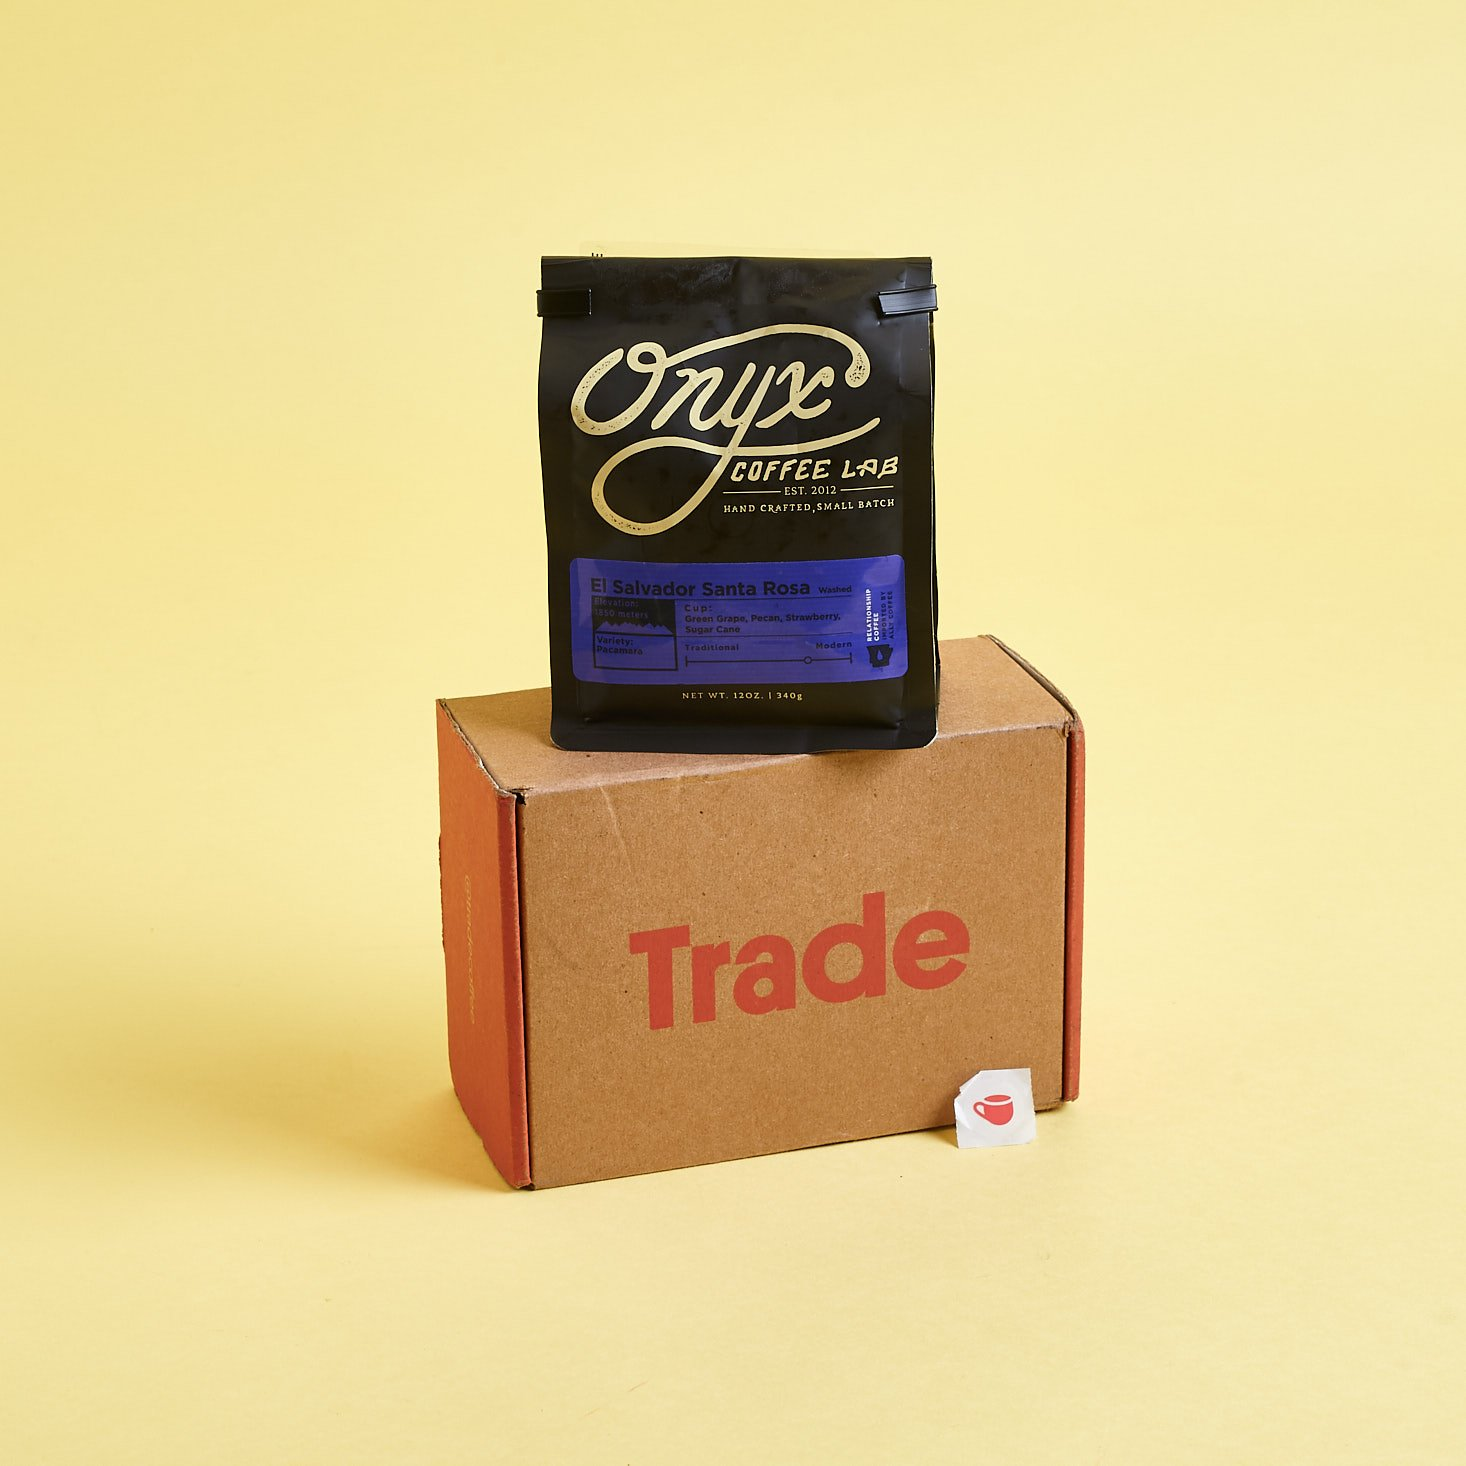 Trade Coffee box shown with a bag of whole bean coffee from Onyx Coffee Lab and a bingo sticker.